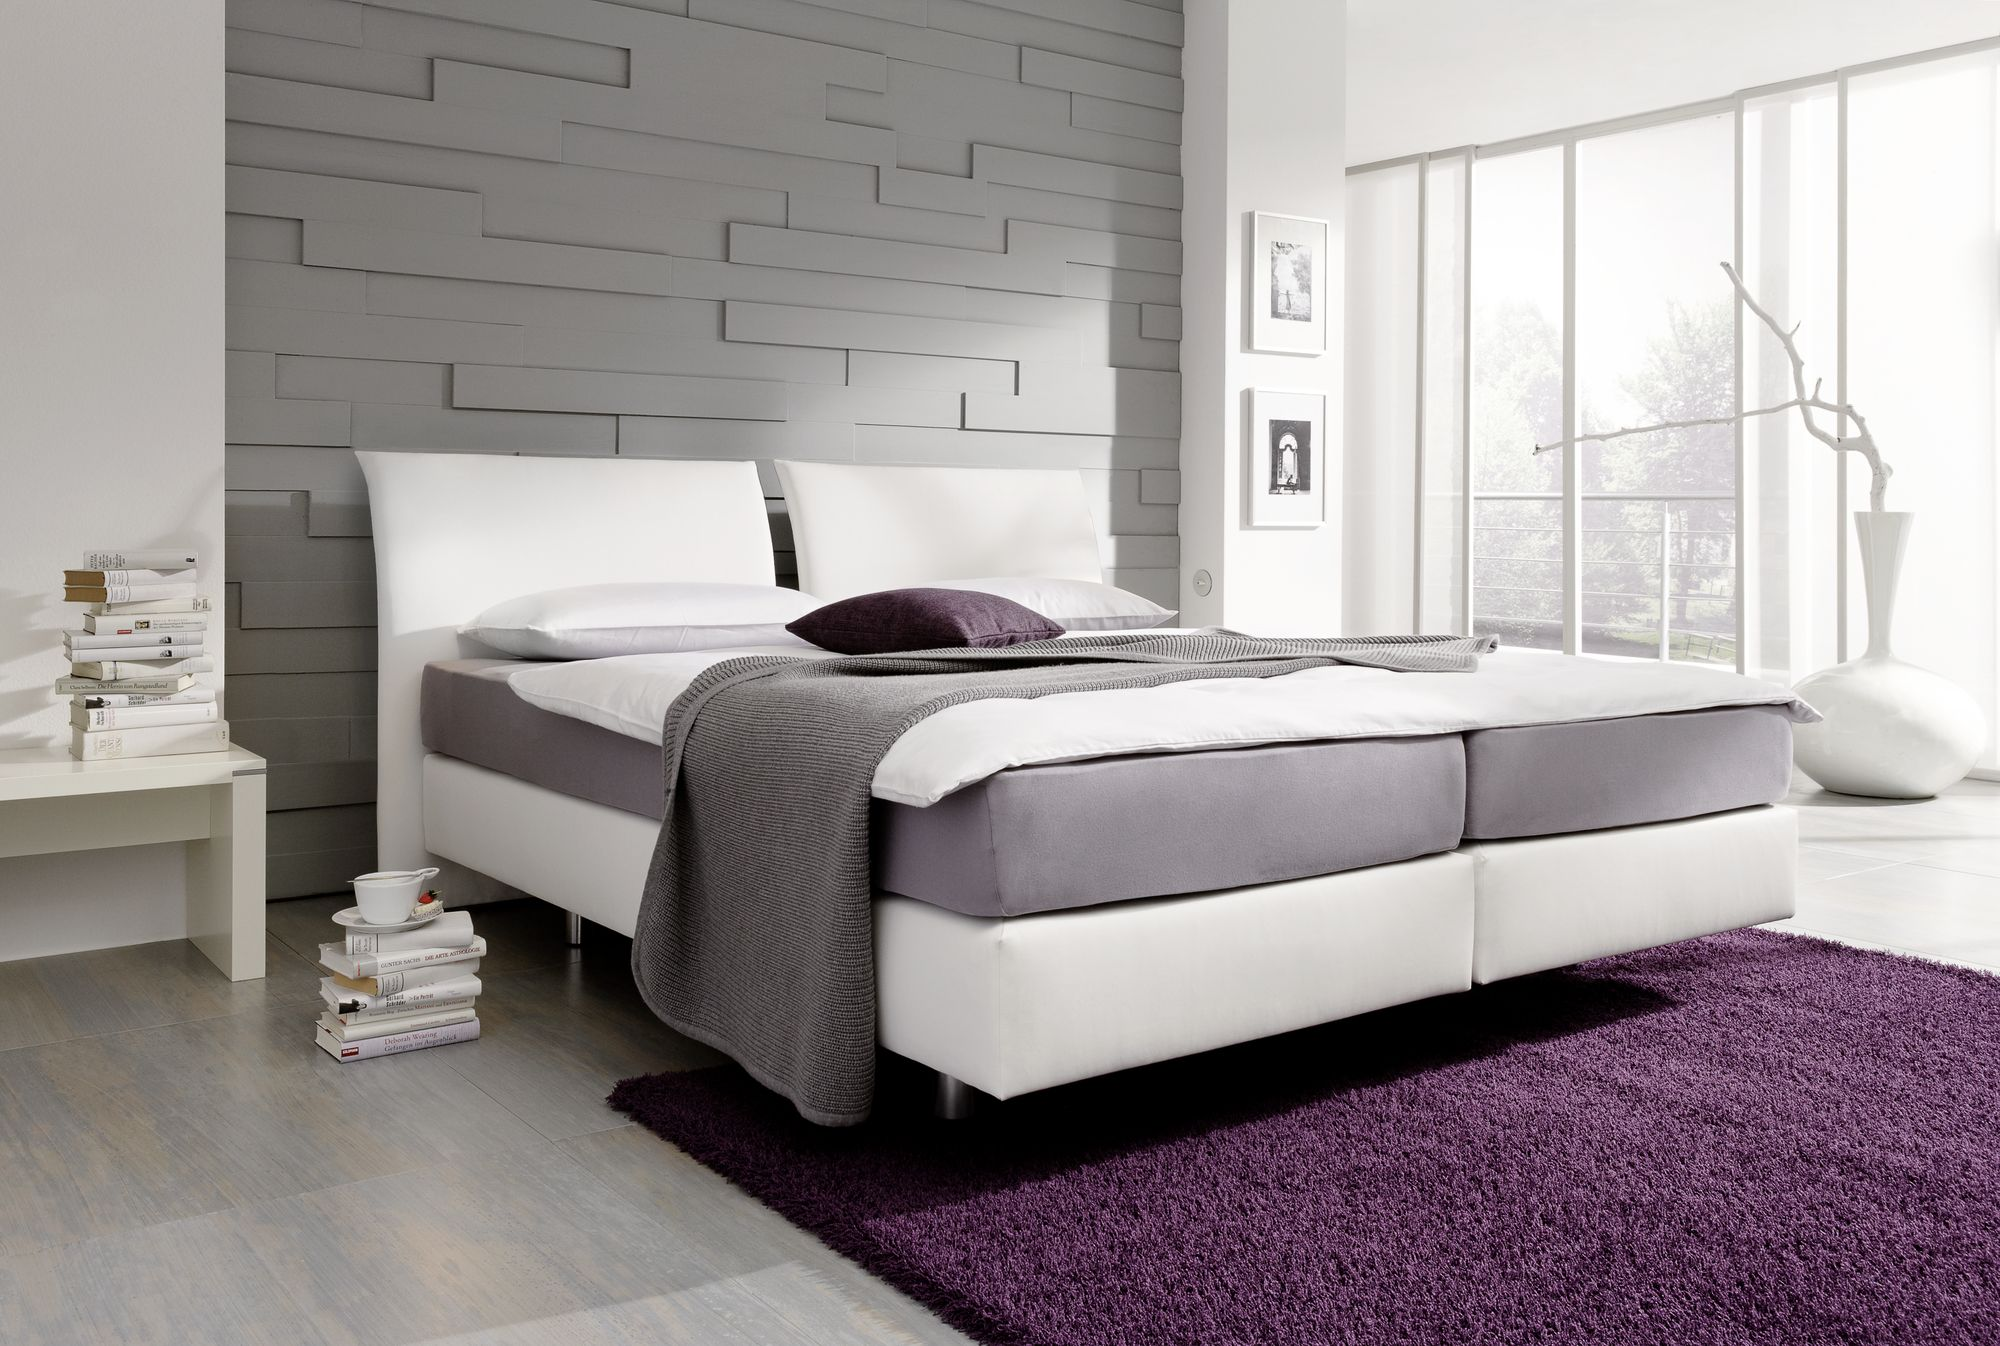 boxspring couture ein programm f r h chsten schlafkomfort schlaffabrik. Black Bedroom Furniture Sets. Home Design Ideas